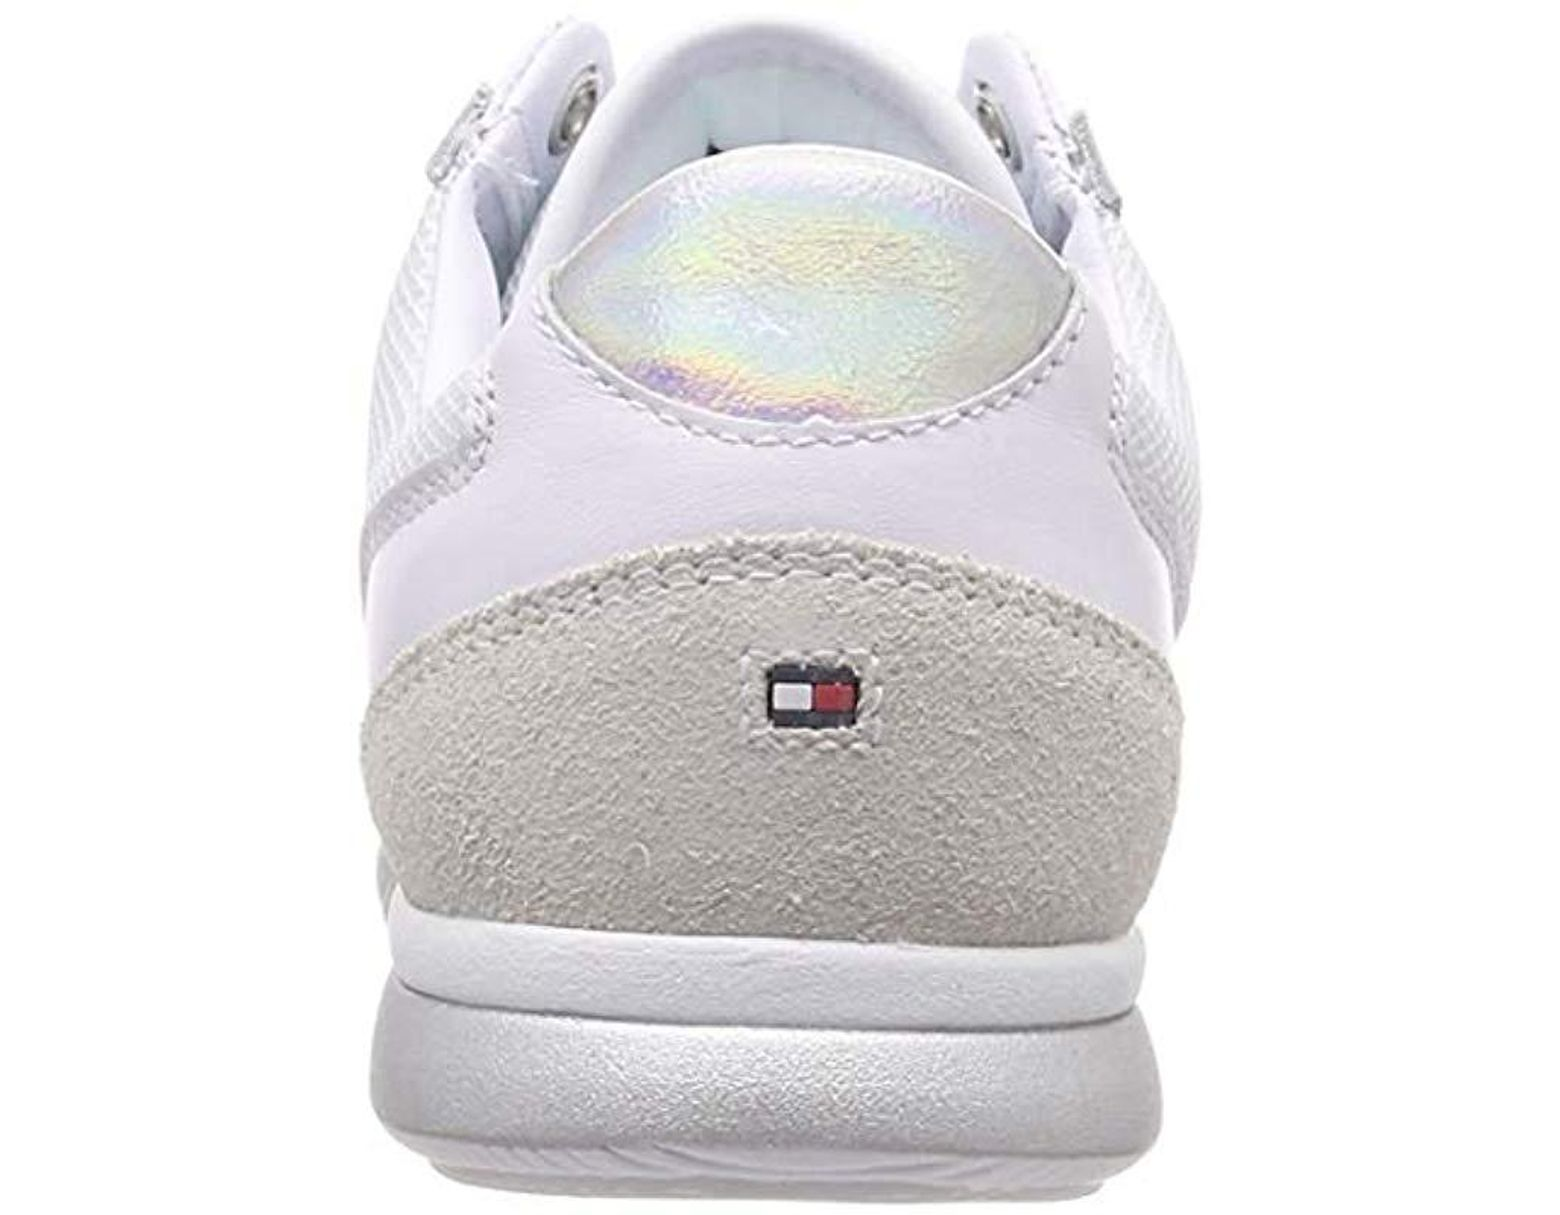 6e824f38d Tommy Hilfiger Iridescent Light Sneaker Low-top in White - Save 9% - Lyst